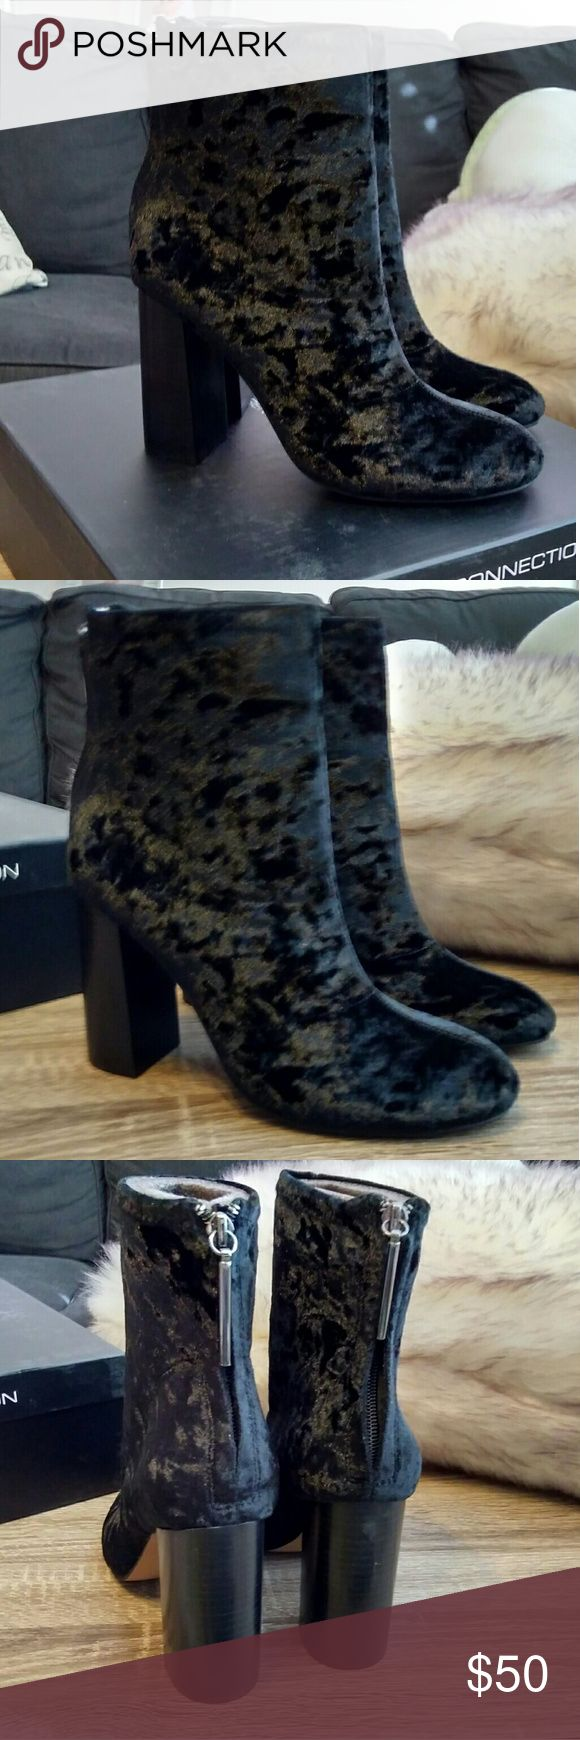 French Connection Velvet Boots Gorgeous black suede boots by French Connection. Brand New in box. Stylish zippers. French Connection Shoes Heeled Boots